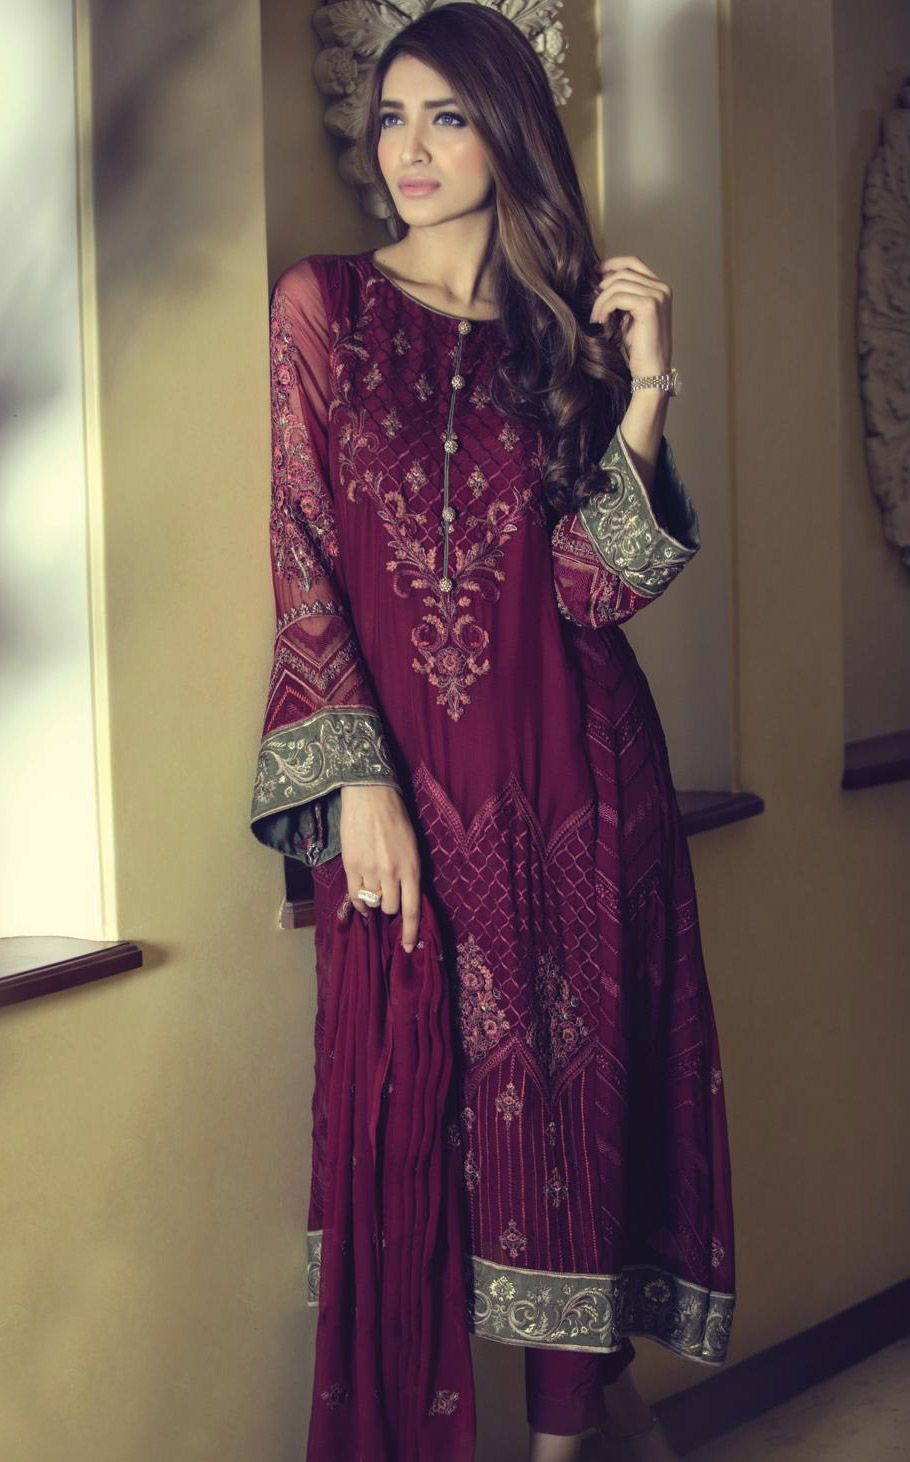 aadbe354e2 Buy Magenta Embroidered Chinese Chiffon A-Line Dress by Maria B. Chiffon  Collection 2015.